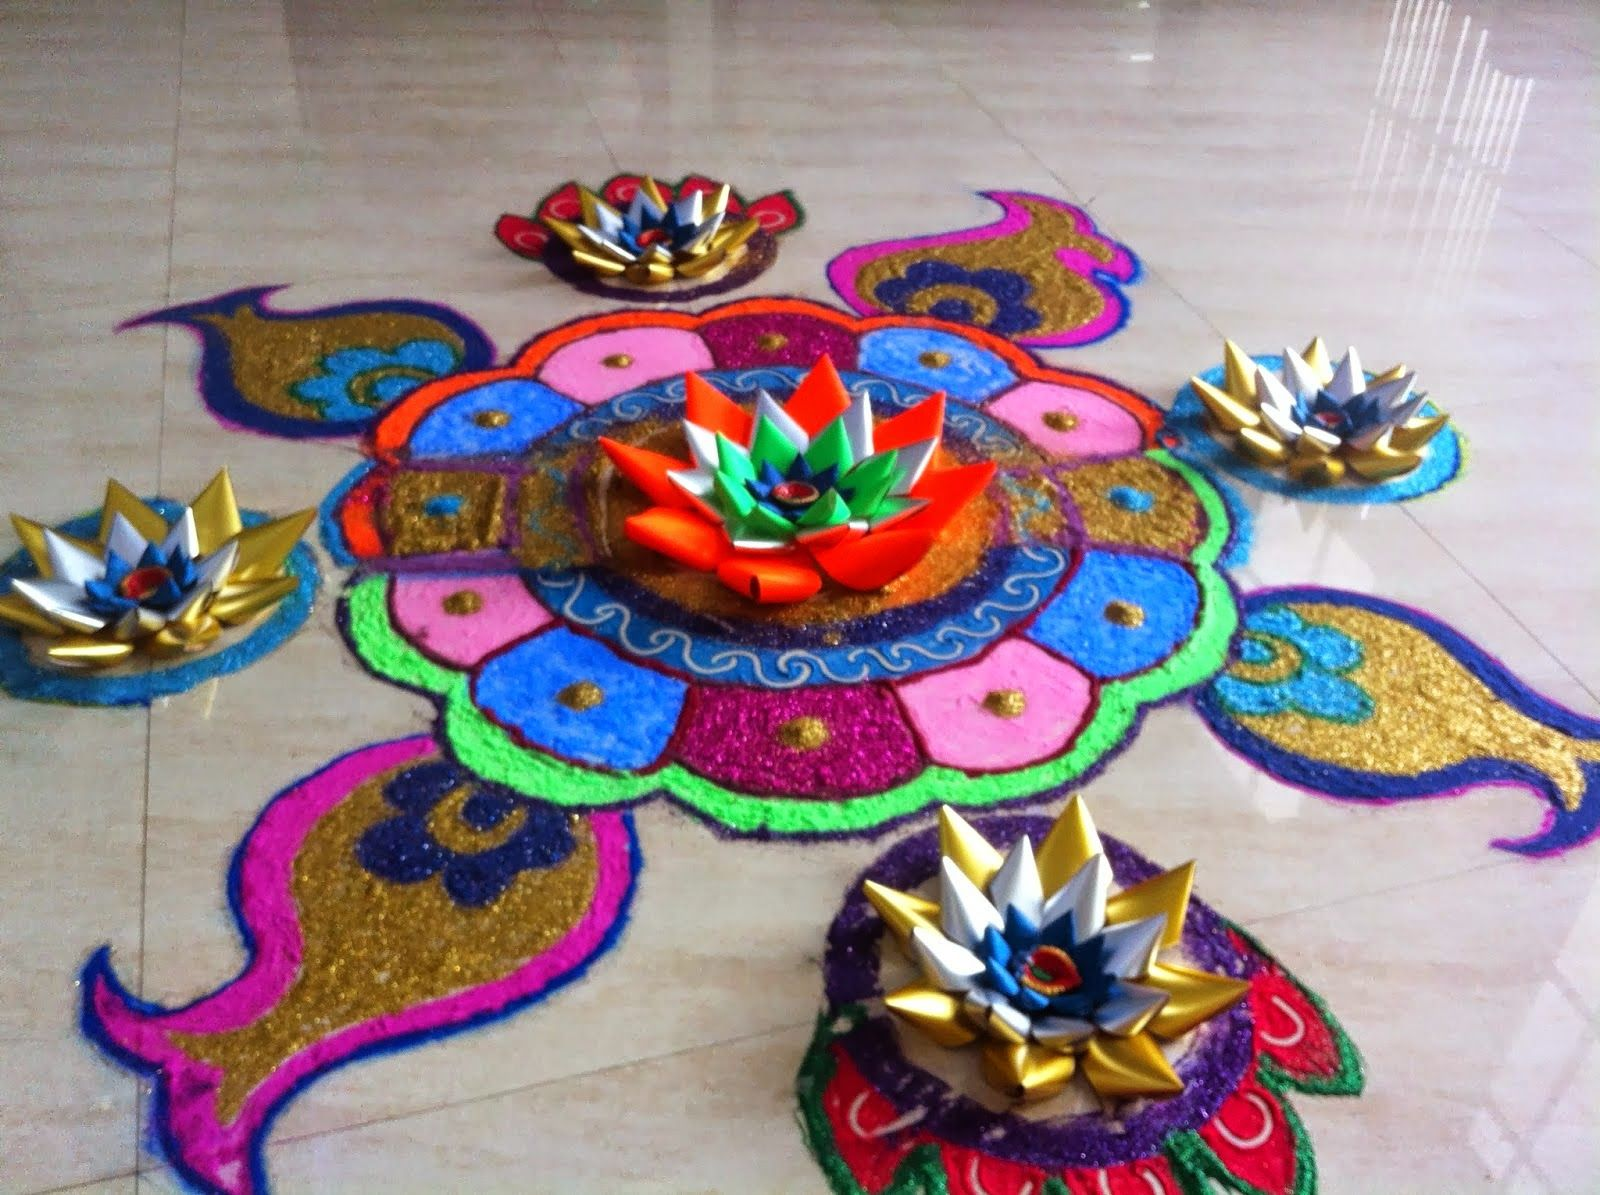 Art craft ideas and bulletin boards for elementary schools vegetable - Art Craft Ideas And Bulletin Boards For Elementary Schools Rangoli Design For Diwali